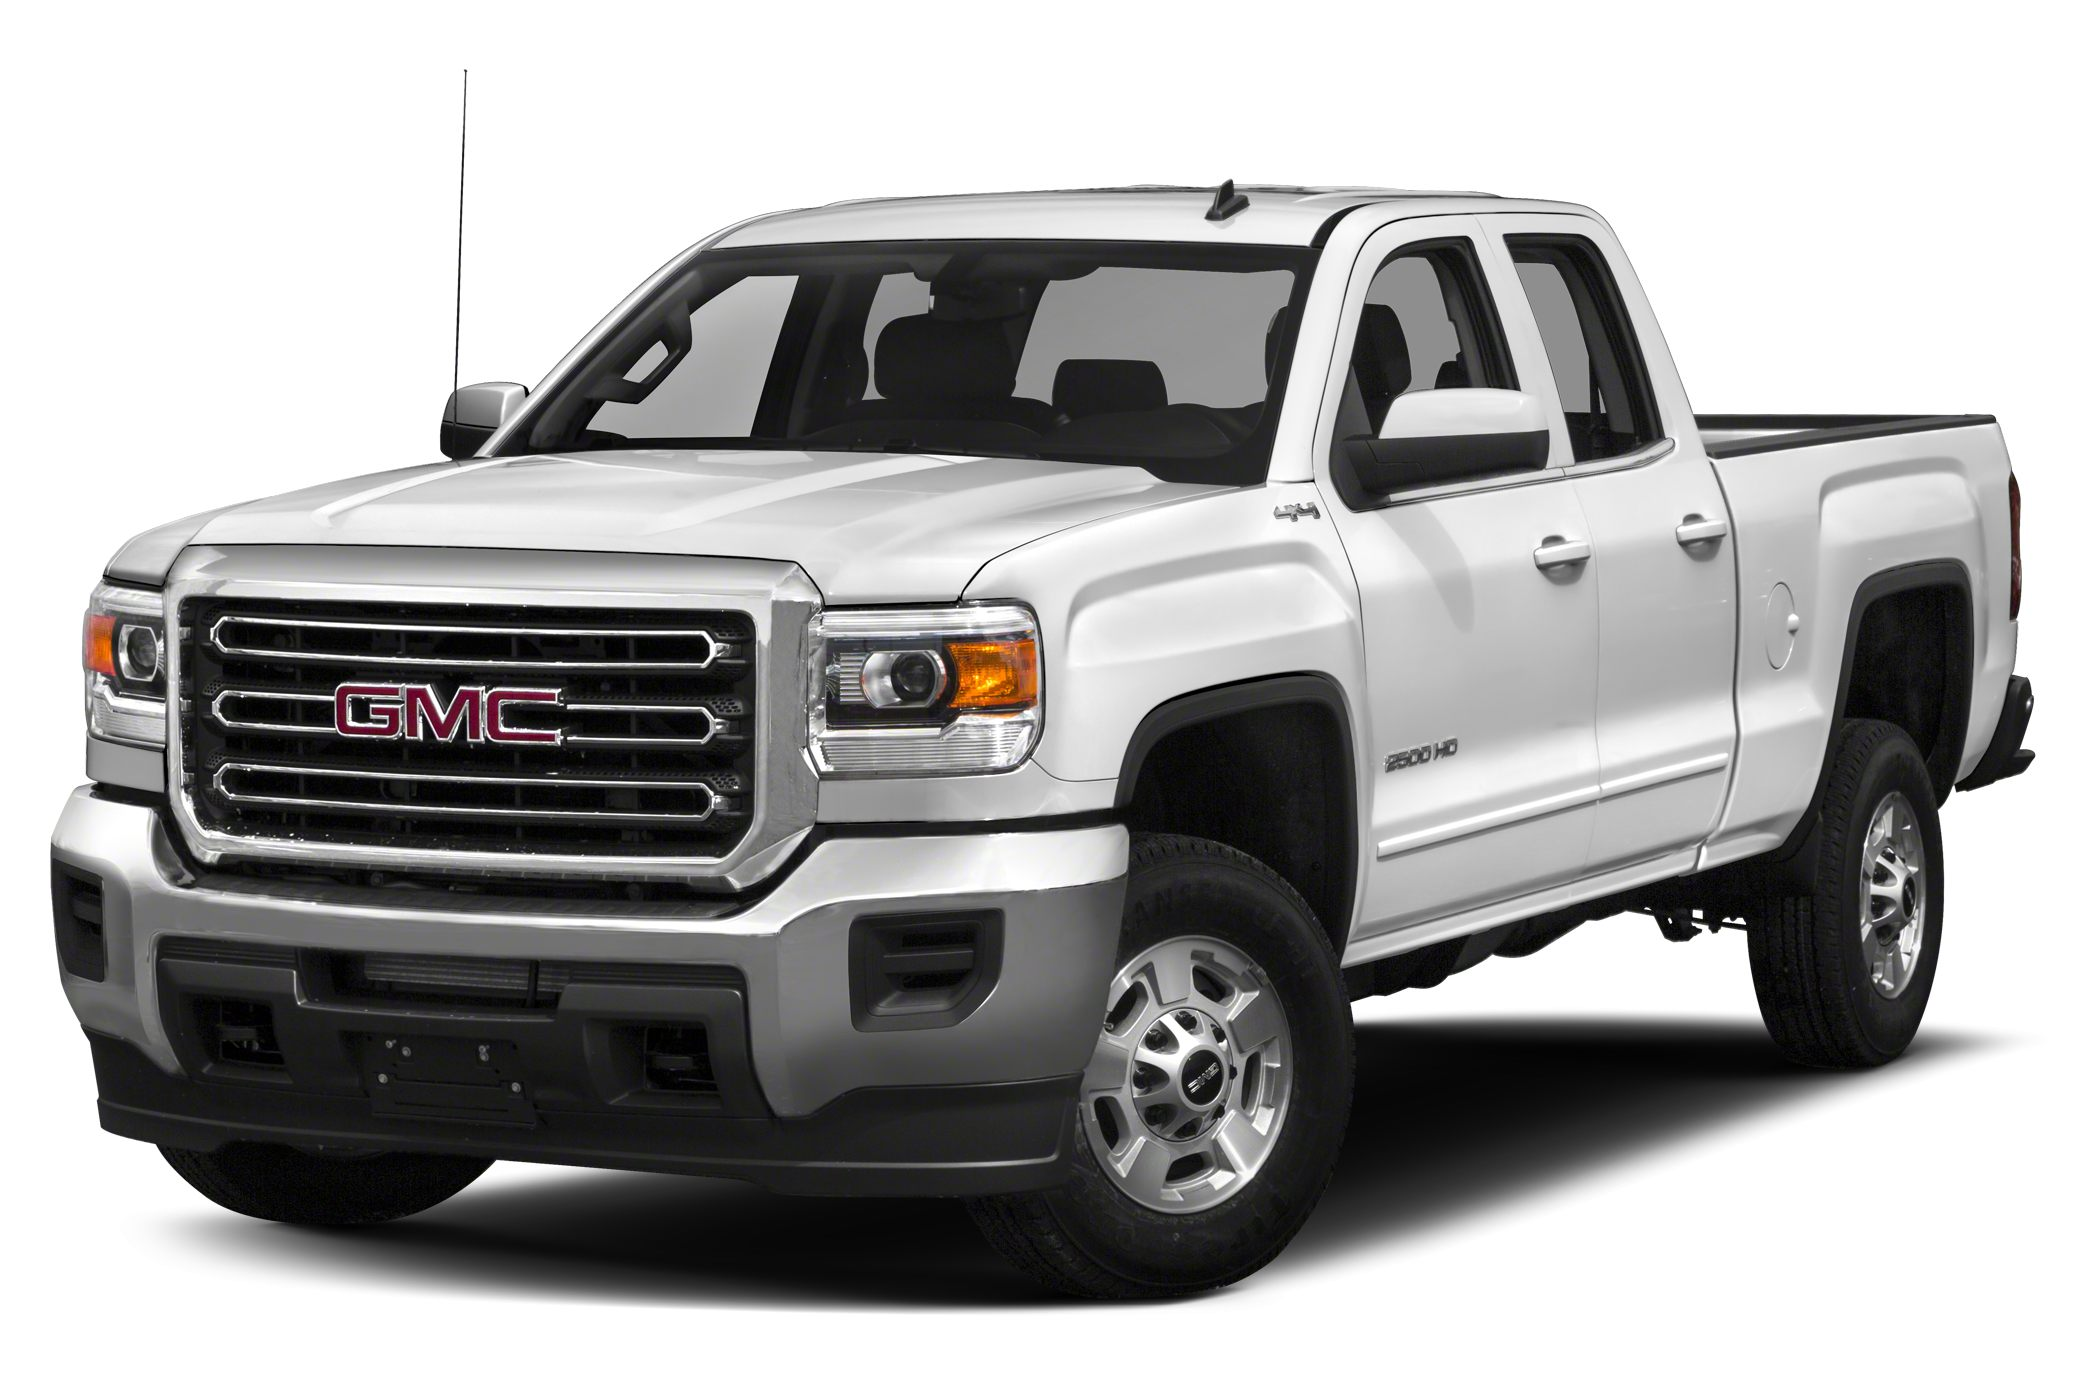 2015 GMC Sierra 2500 SLE Crew Cab Pickup for sale in Butte for $44,951 with 9 miles.